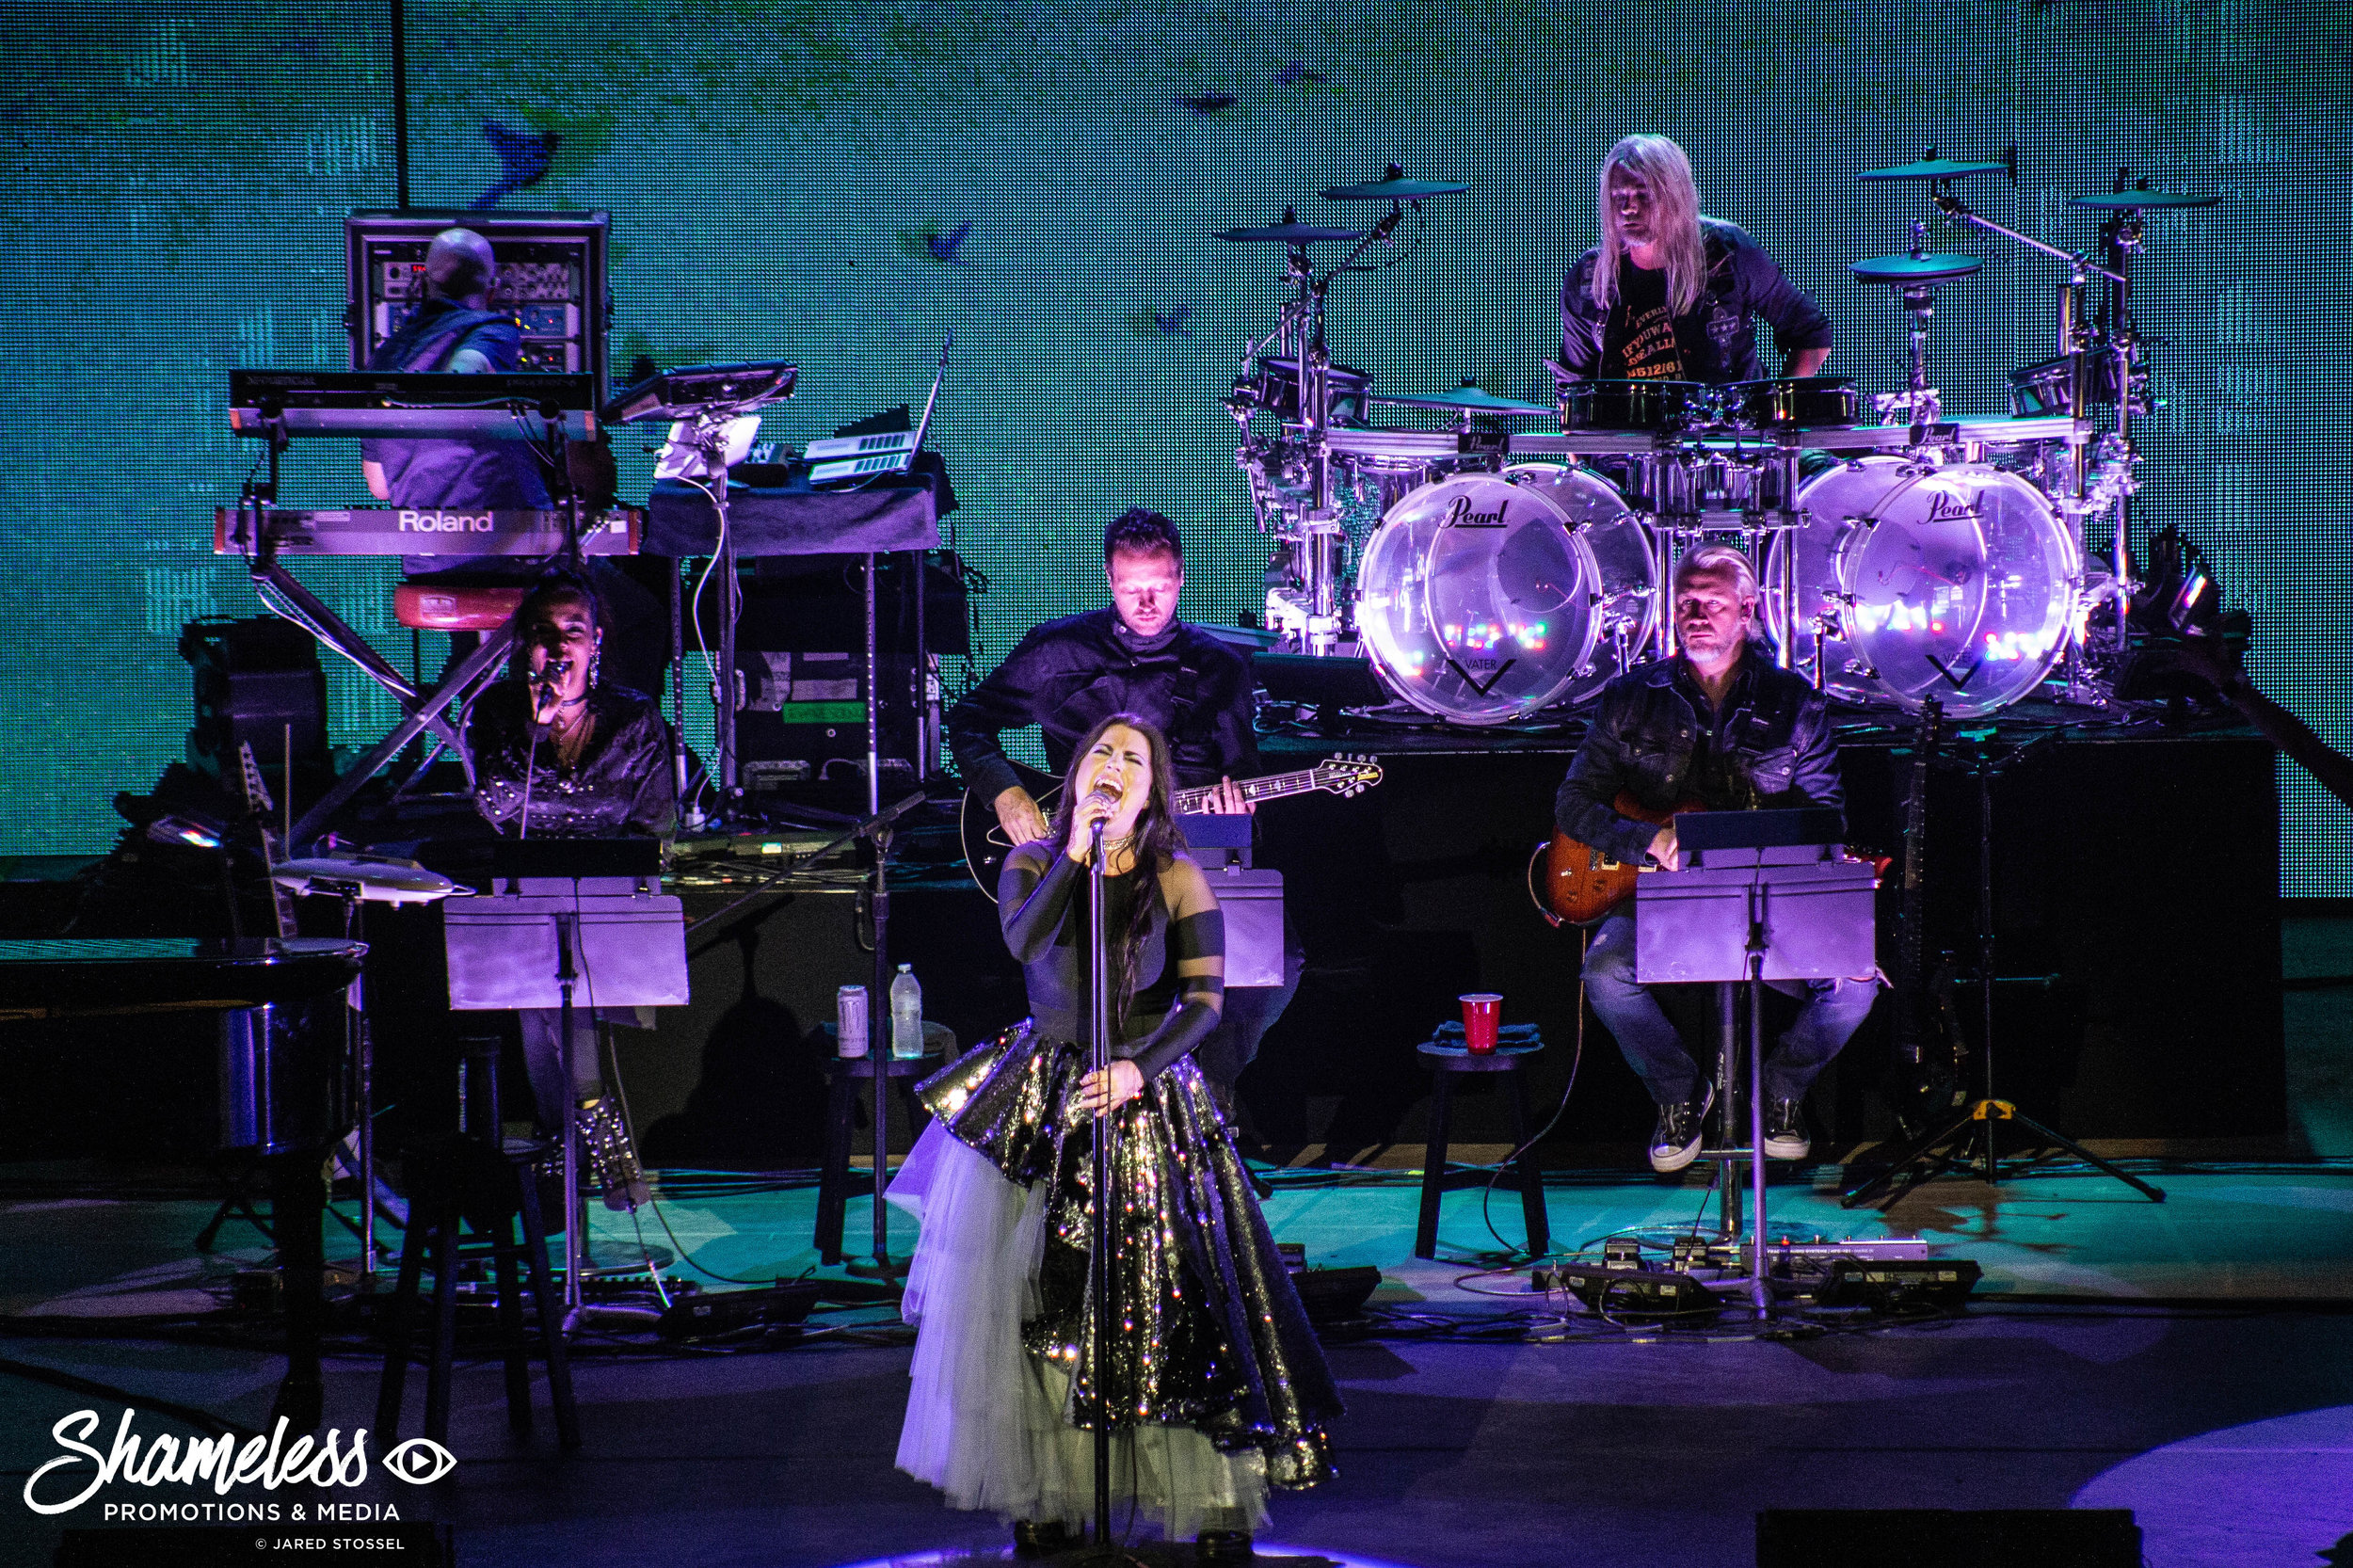 Evanescence performing at Shoreline Amphitheatre in Mountain View, CA. September 5, 2018. Photo Credit: Jared Stossel.